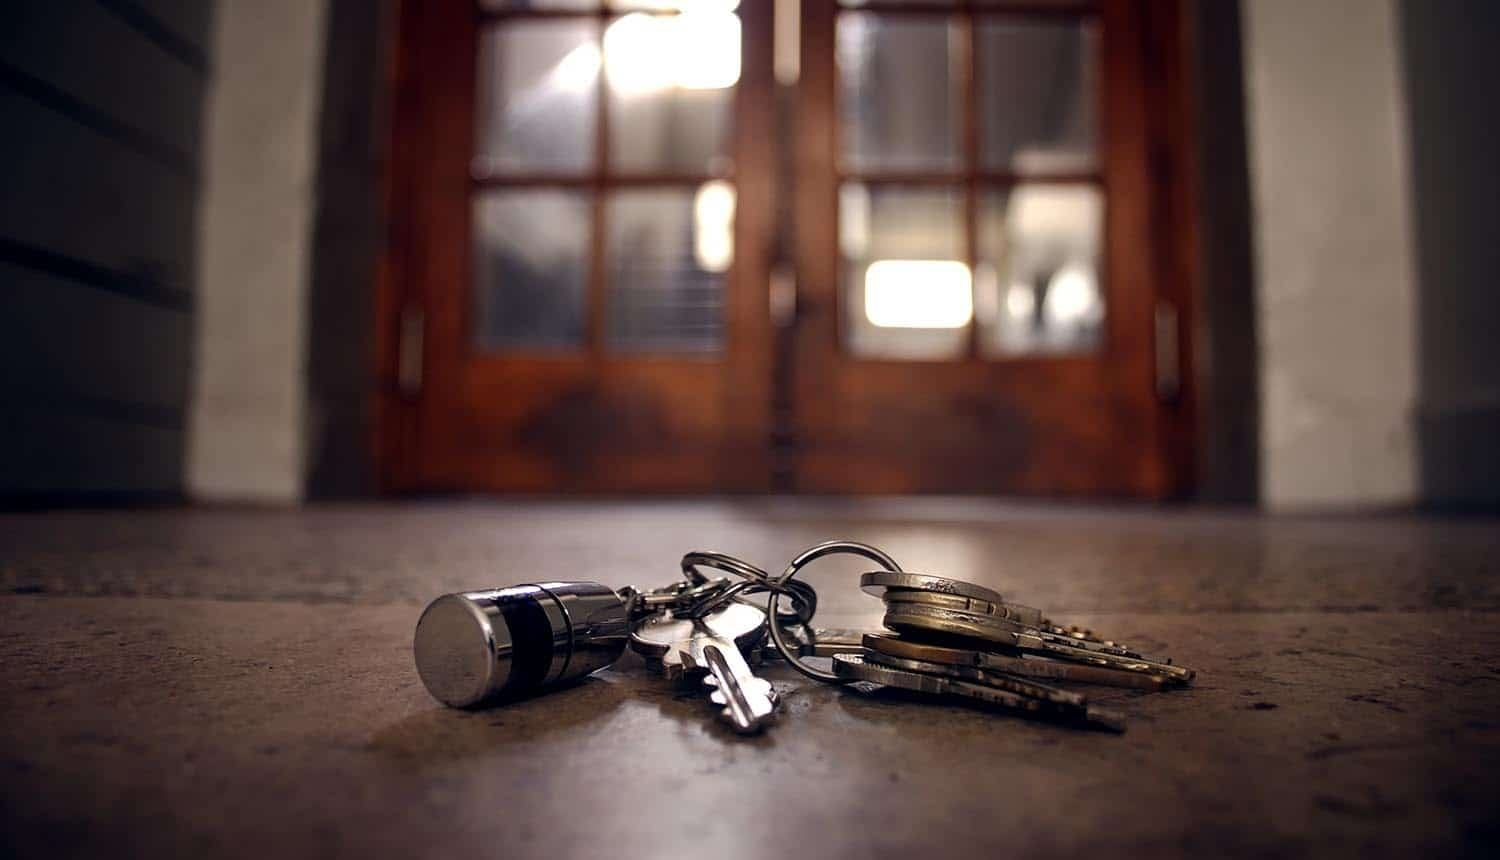 Keys on the floor in front of the door showing the benefits and risks of corporate security policies in employees' homes